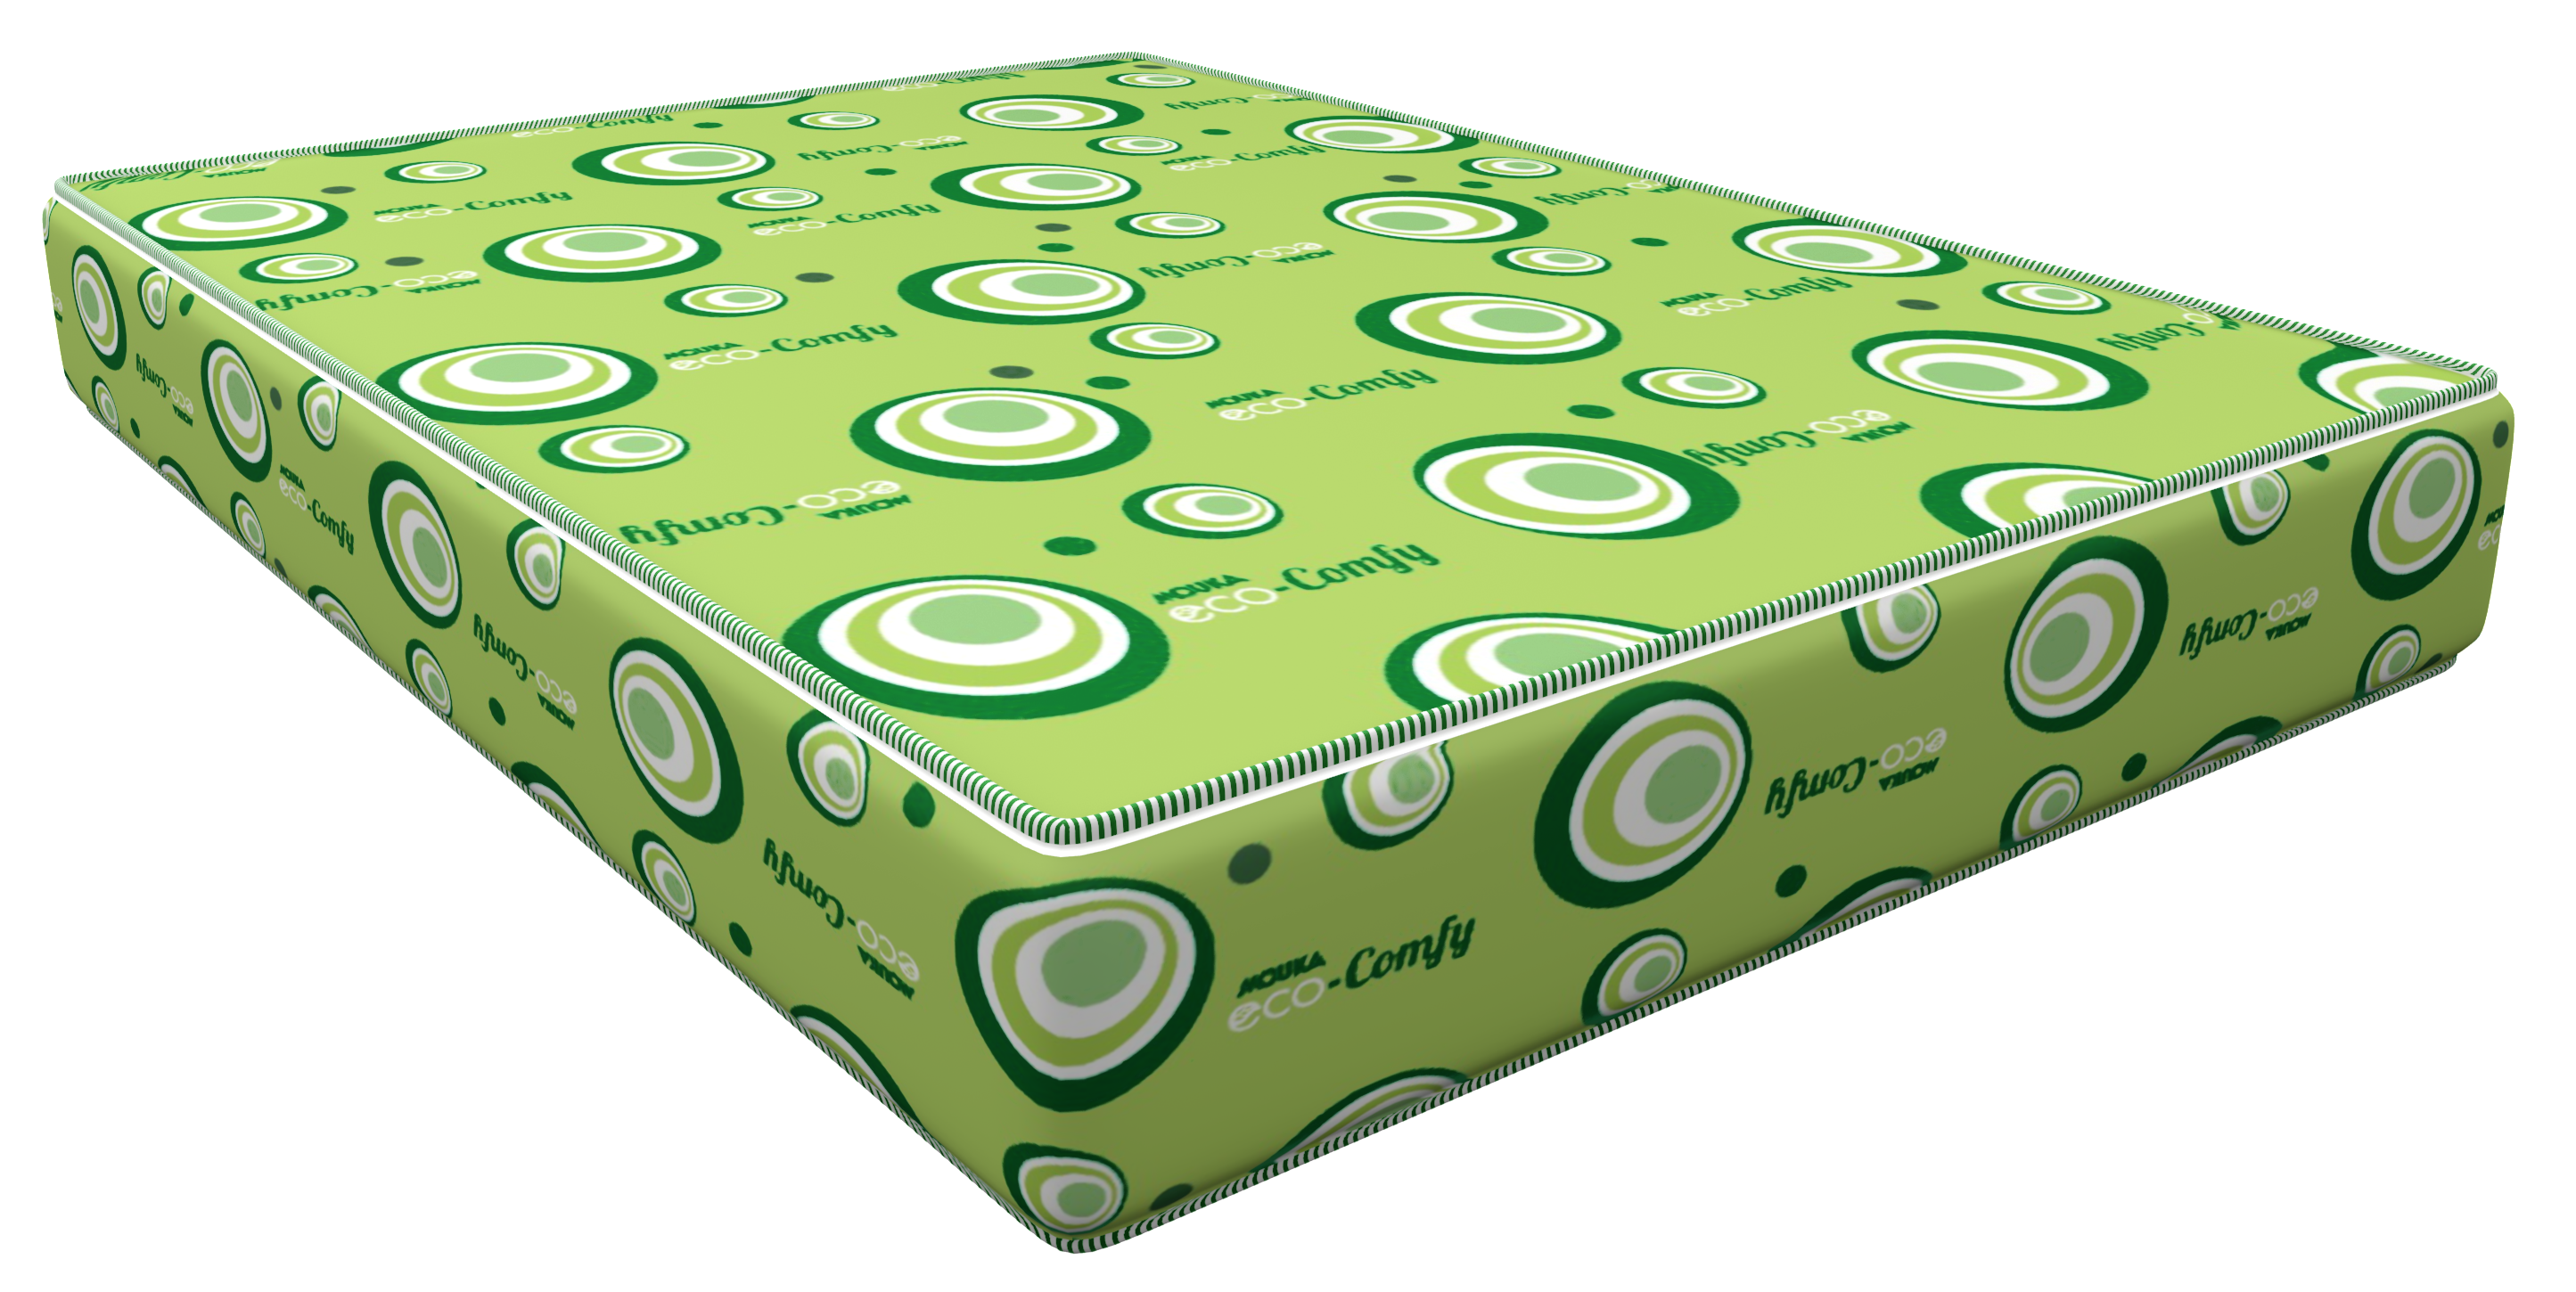 Mouka launches ground-breaking innovation, Eco-Comfy Fibre Mattress